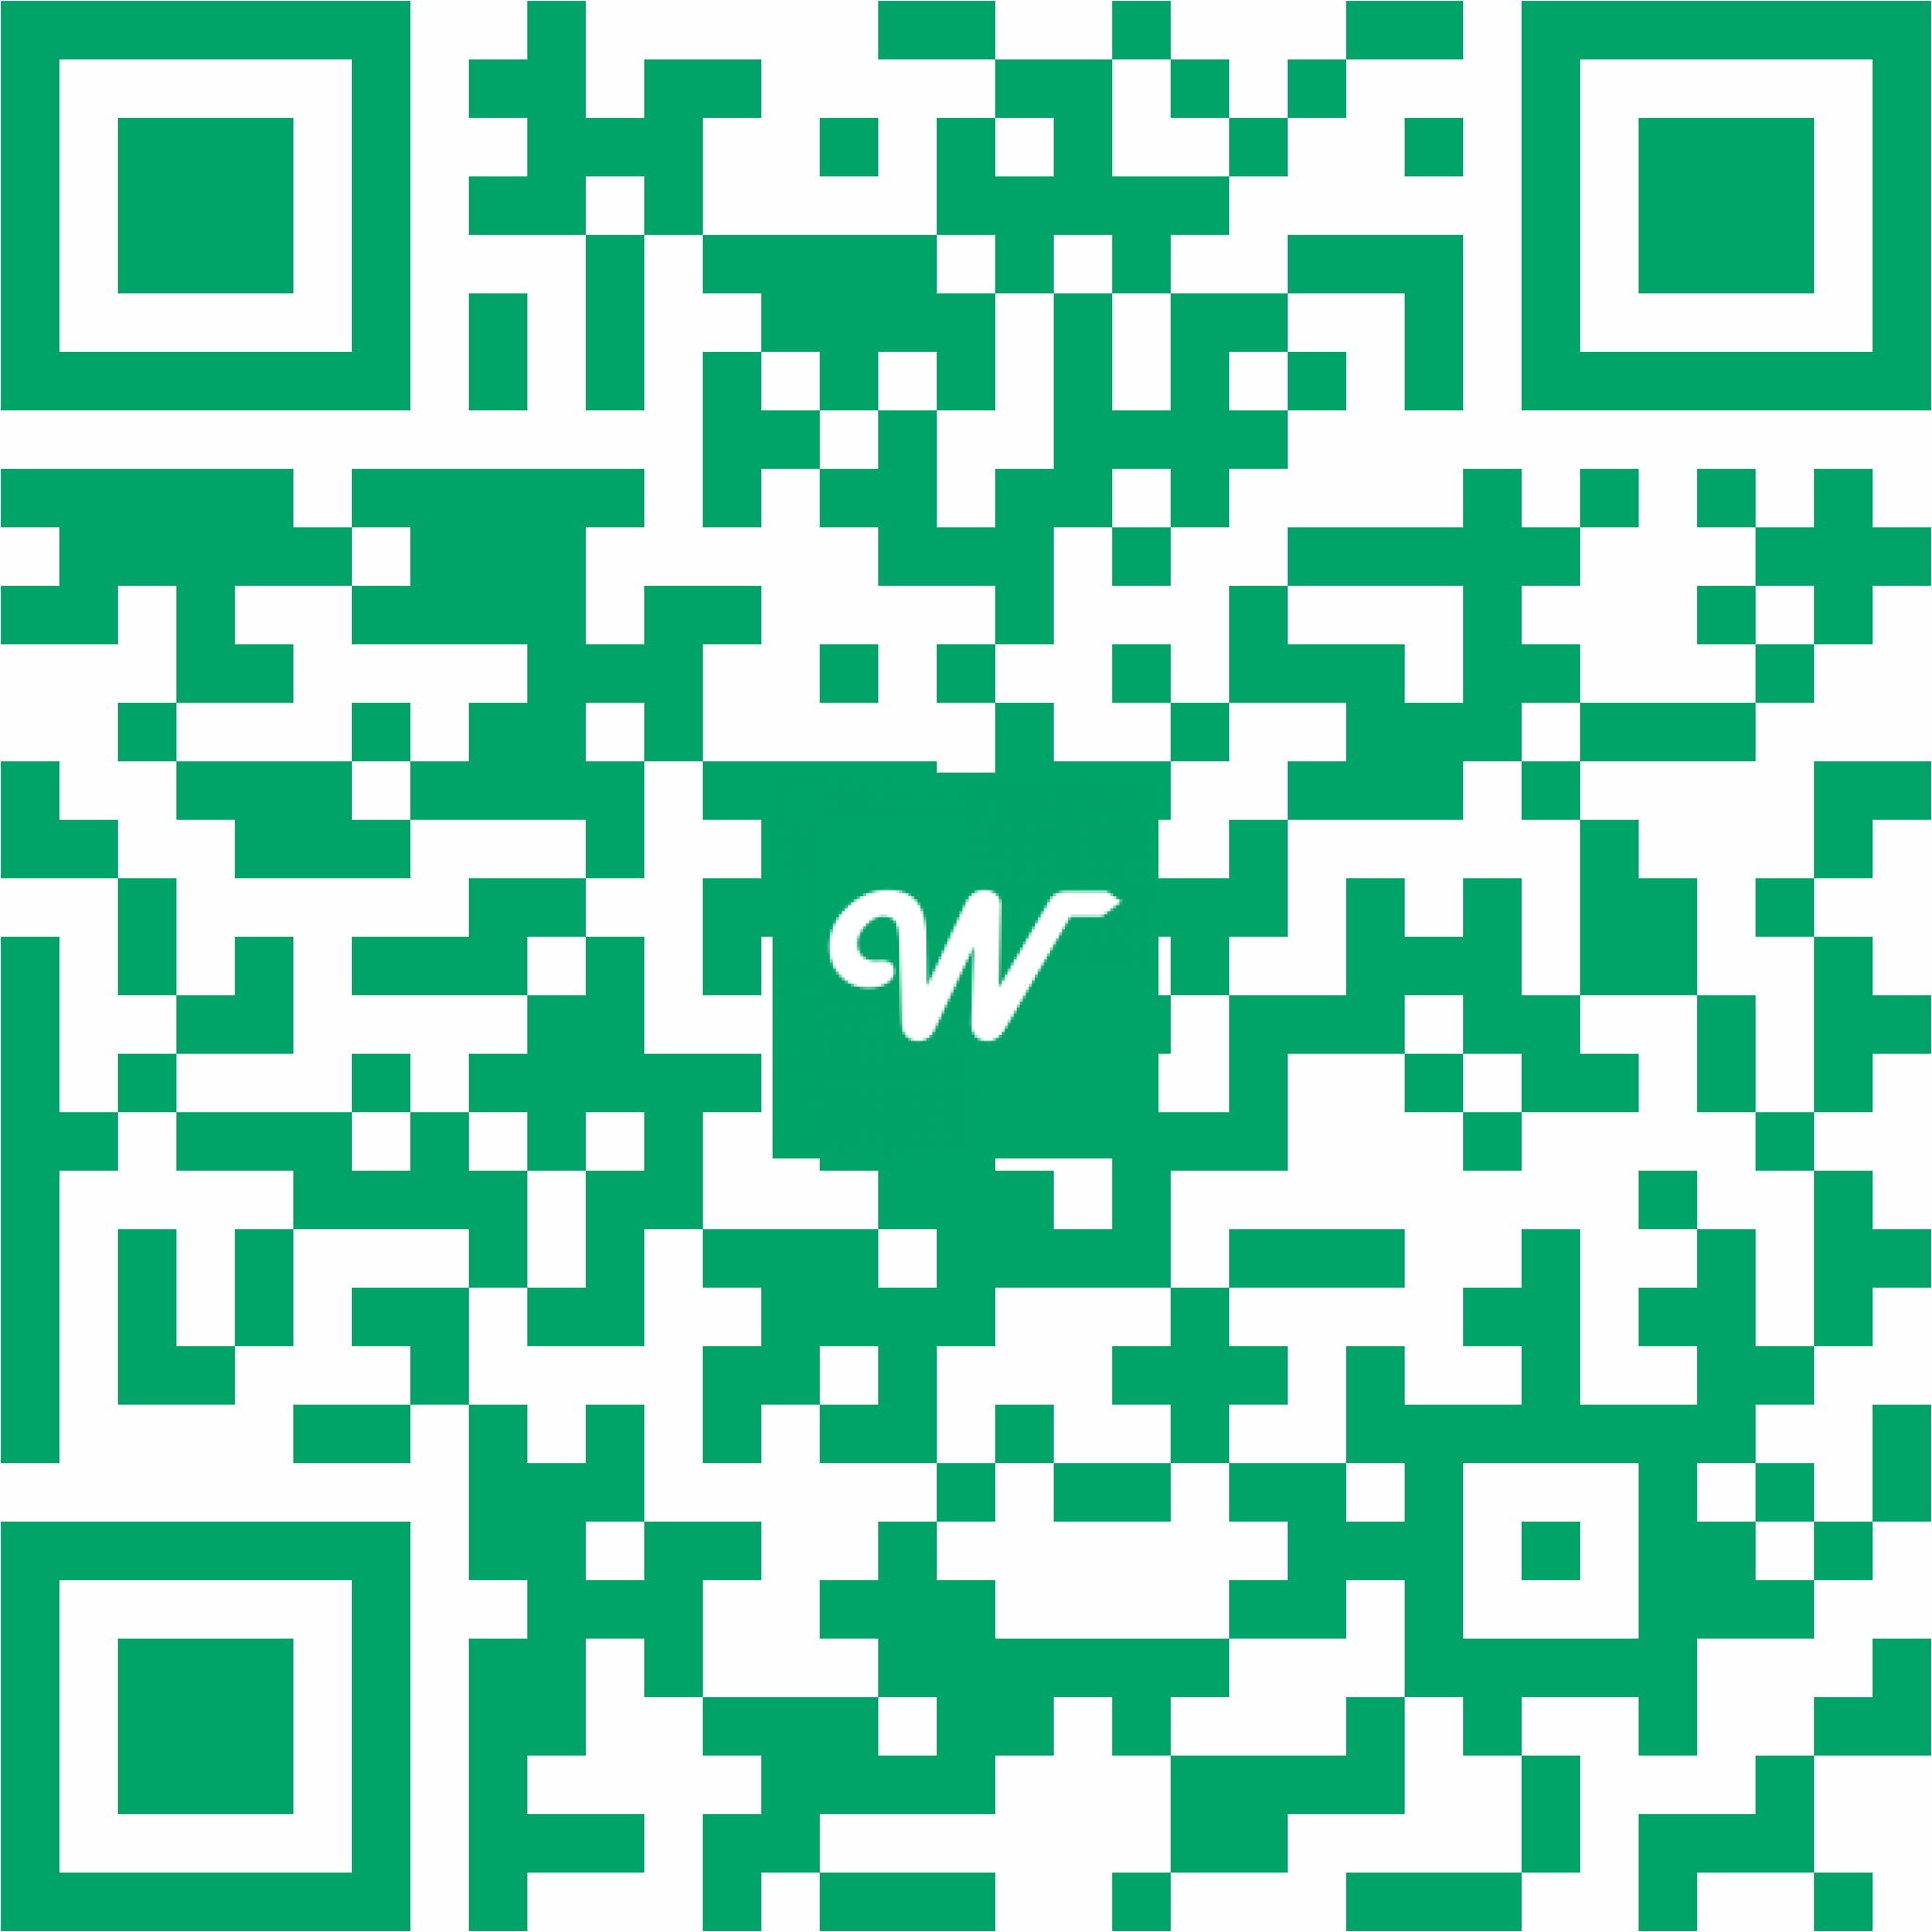 Printable QR code for State